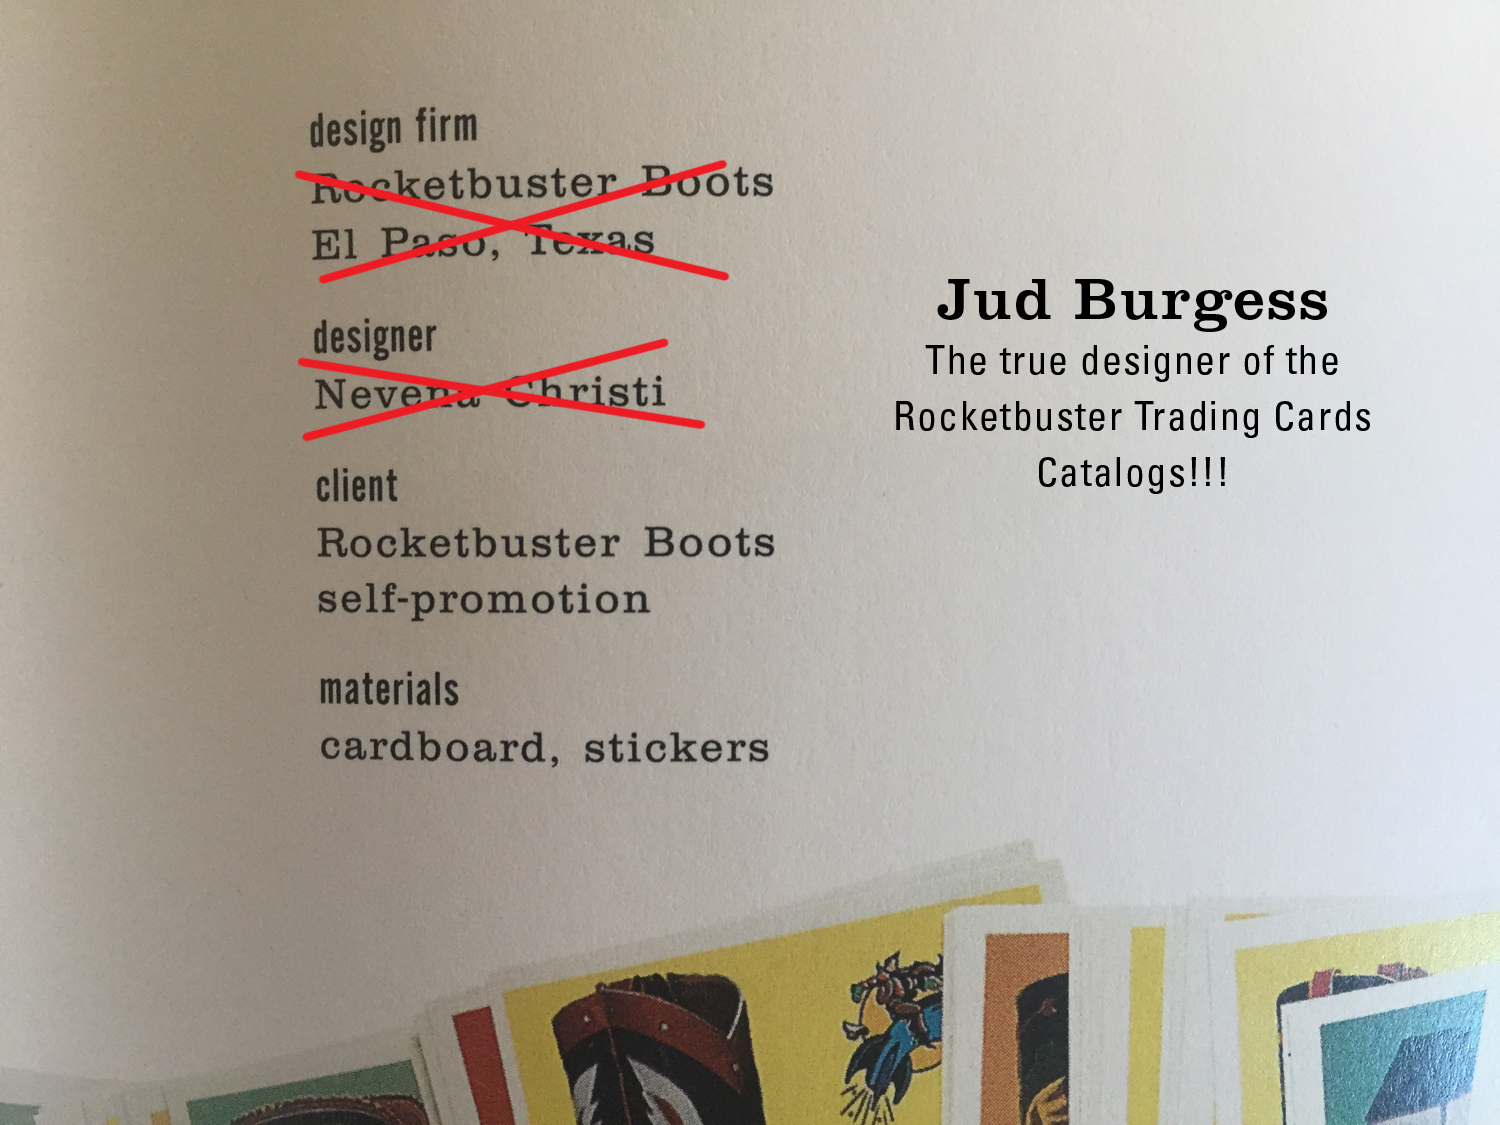 Jud Burgess, the true designer of the Rocketbuster Boots Trading Cards Catalogue.   Credit where credit is due.